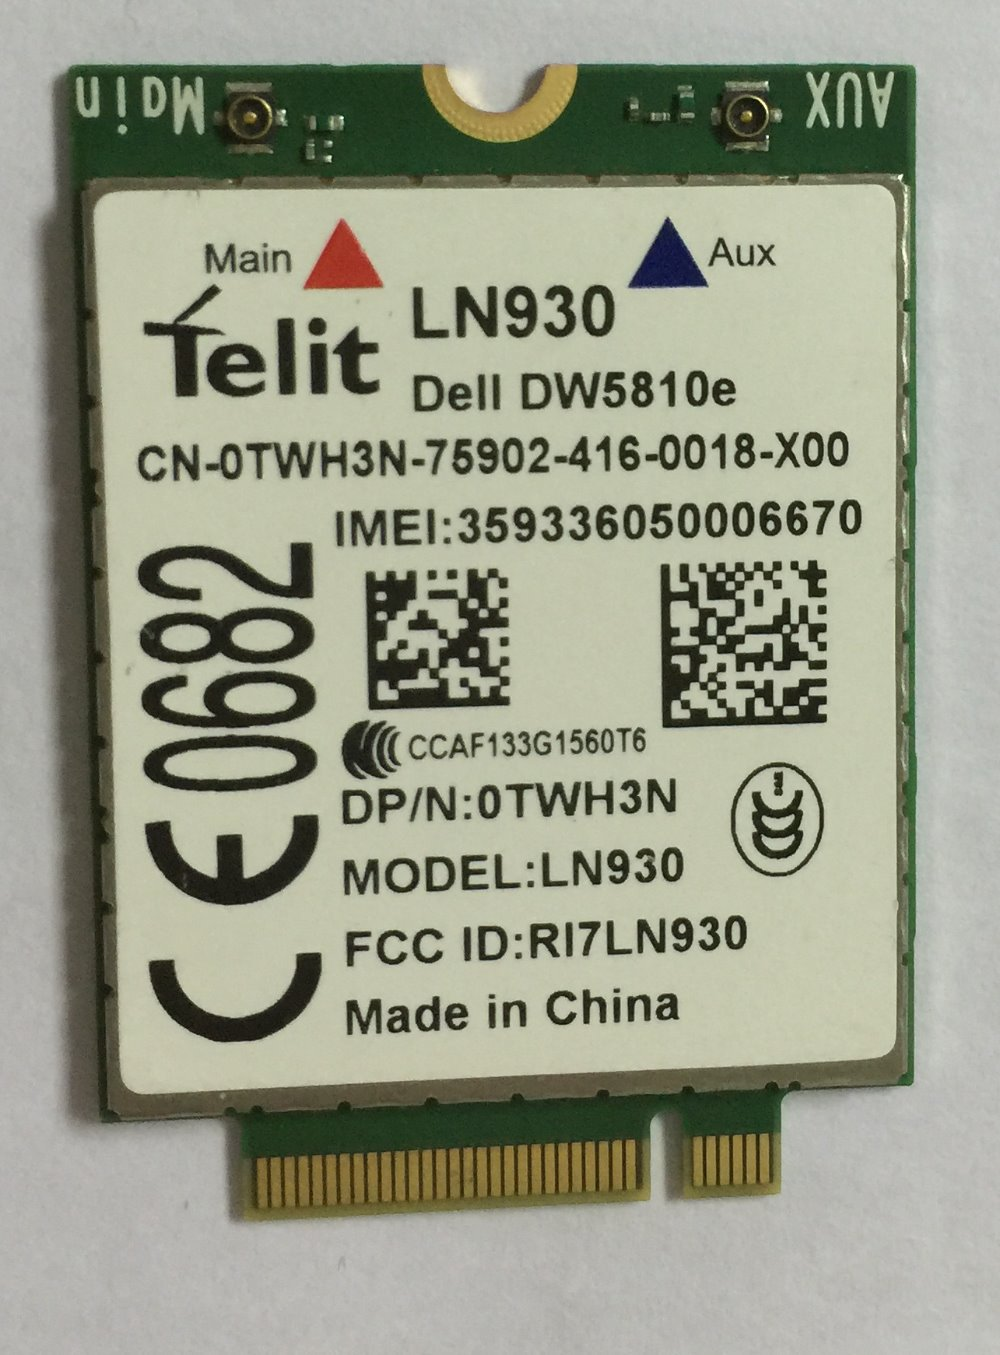 Telit Ln930 Nrr39 Ngff Module Card For Dell Wireless Wifi Dw5810e Venue 11 Pro 4g/lte/dc-hspa+ Wwan 4g High-speed Network Card huawei me936 4 g lte module ngff wcdma quad band edge gprs gsm penta band dc hspa hsp wwan card